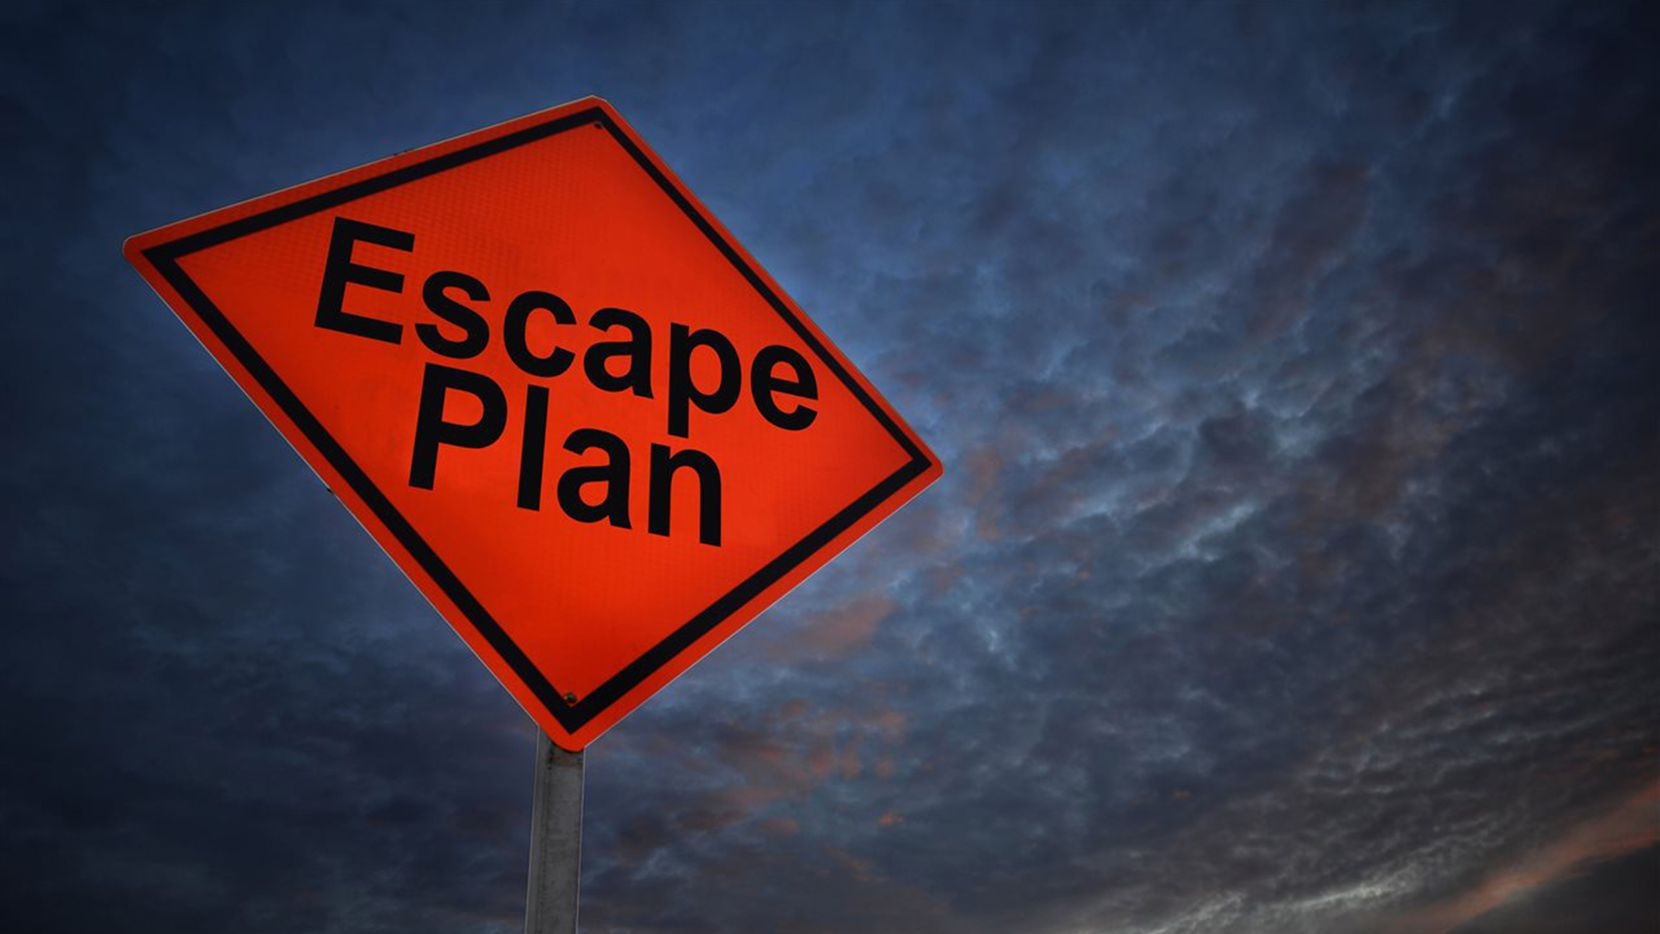 Your first instinct might be to panic, so having an evacuation plan in place and practicing it regularly will help ensure you and your family are ready to go at a moment's notice.